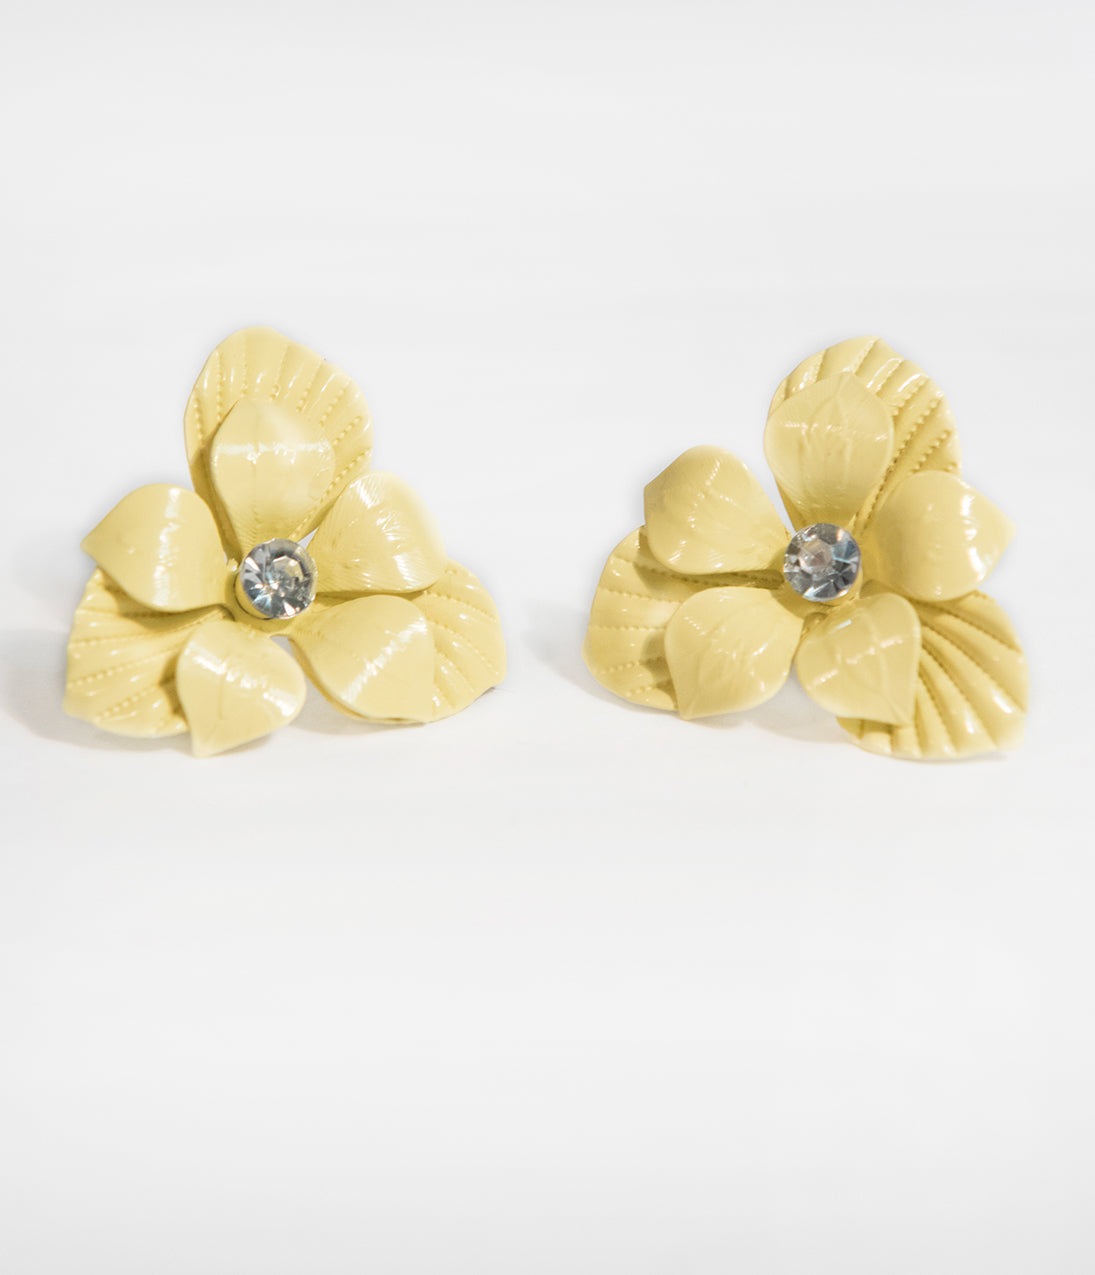 50s Jewelry: Earrings, Necklace, Brooch, Bracelet Yellow Floral Metal Stud Earrings $12.00 AT vintagedancer.com